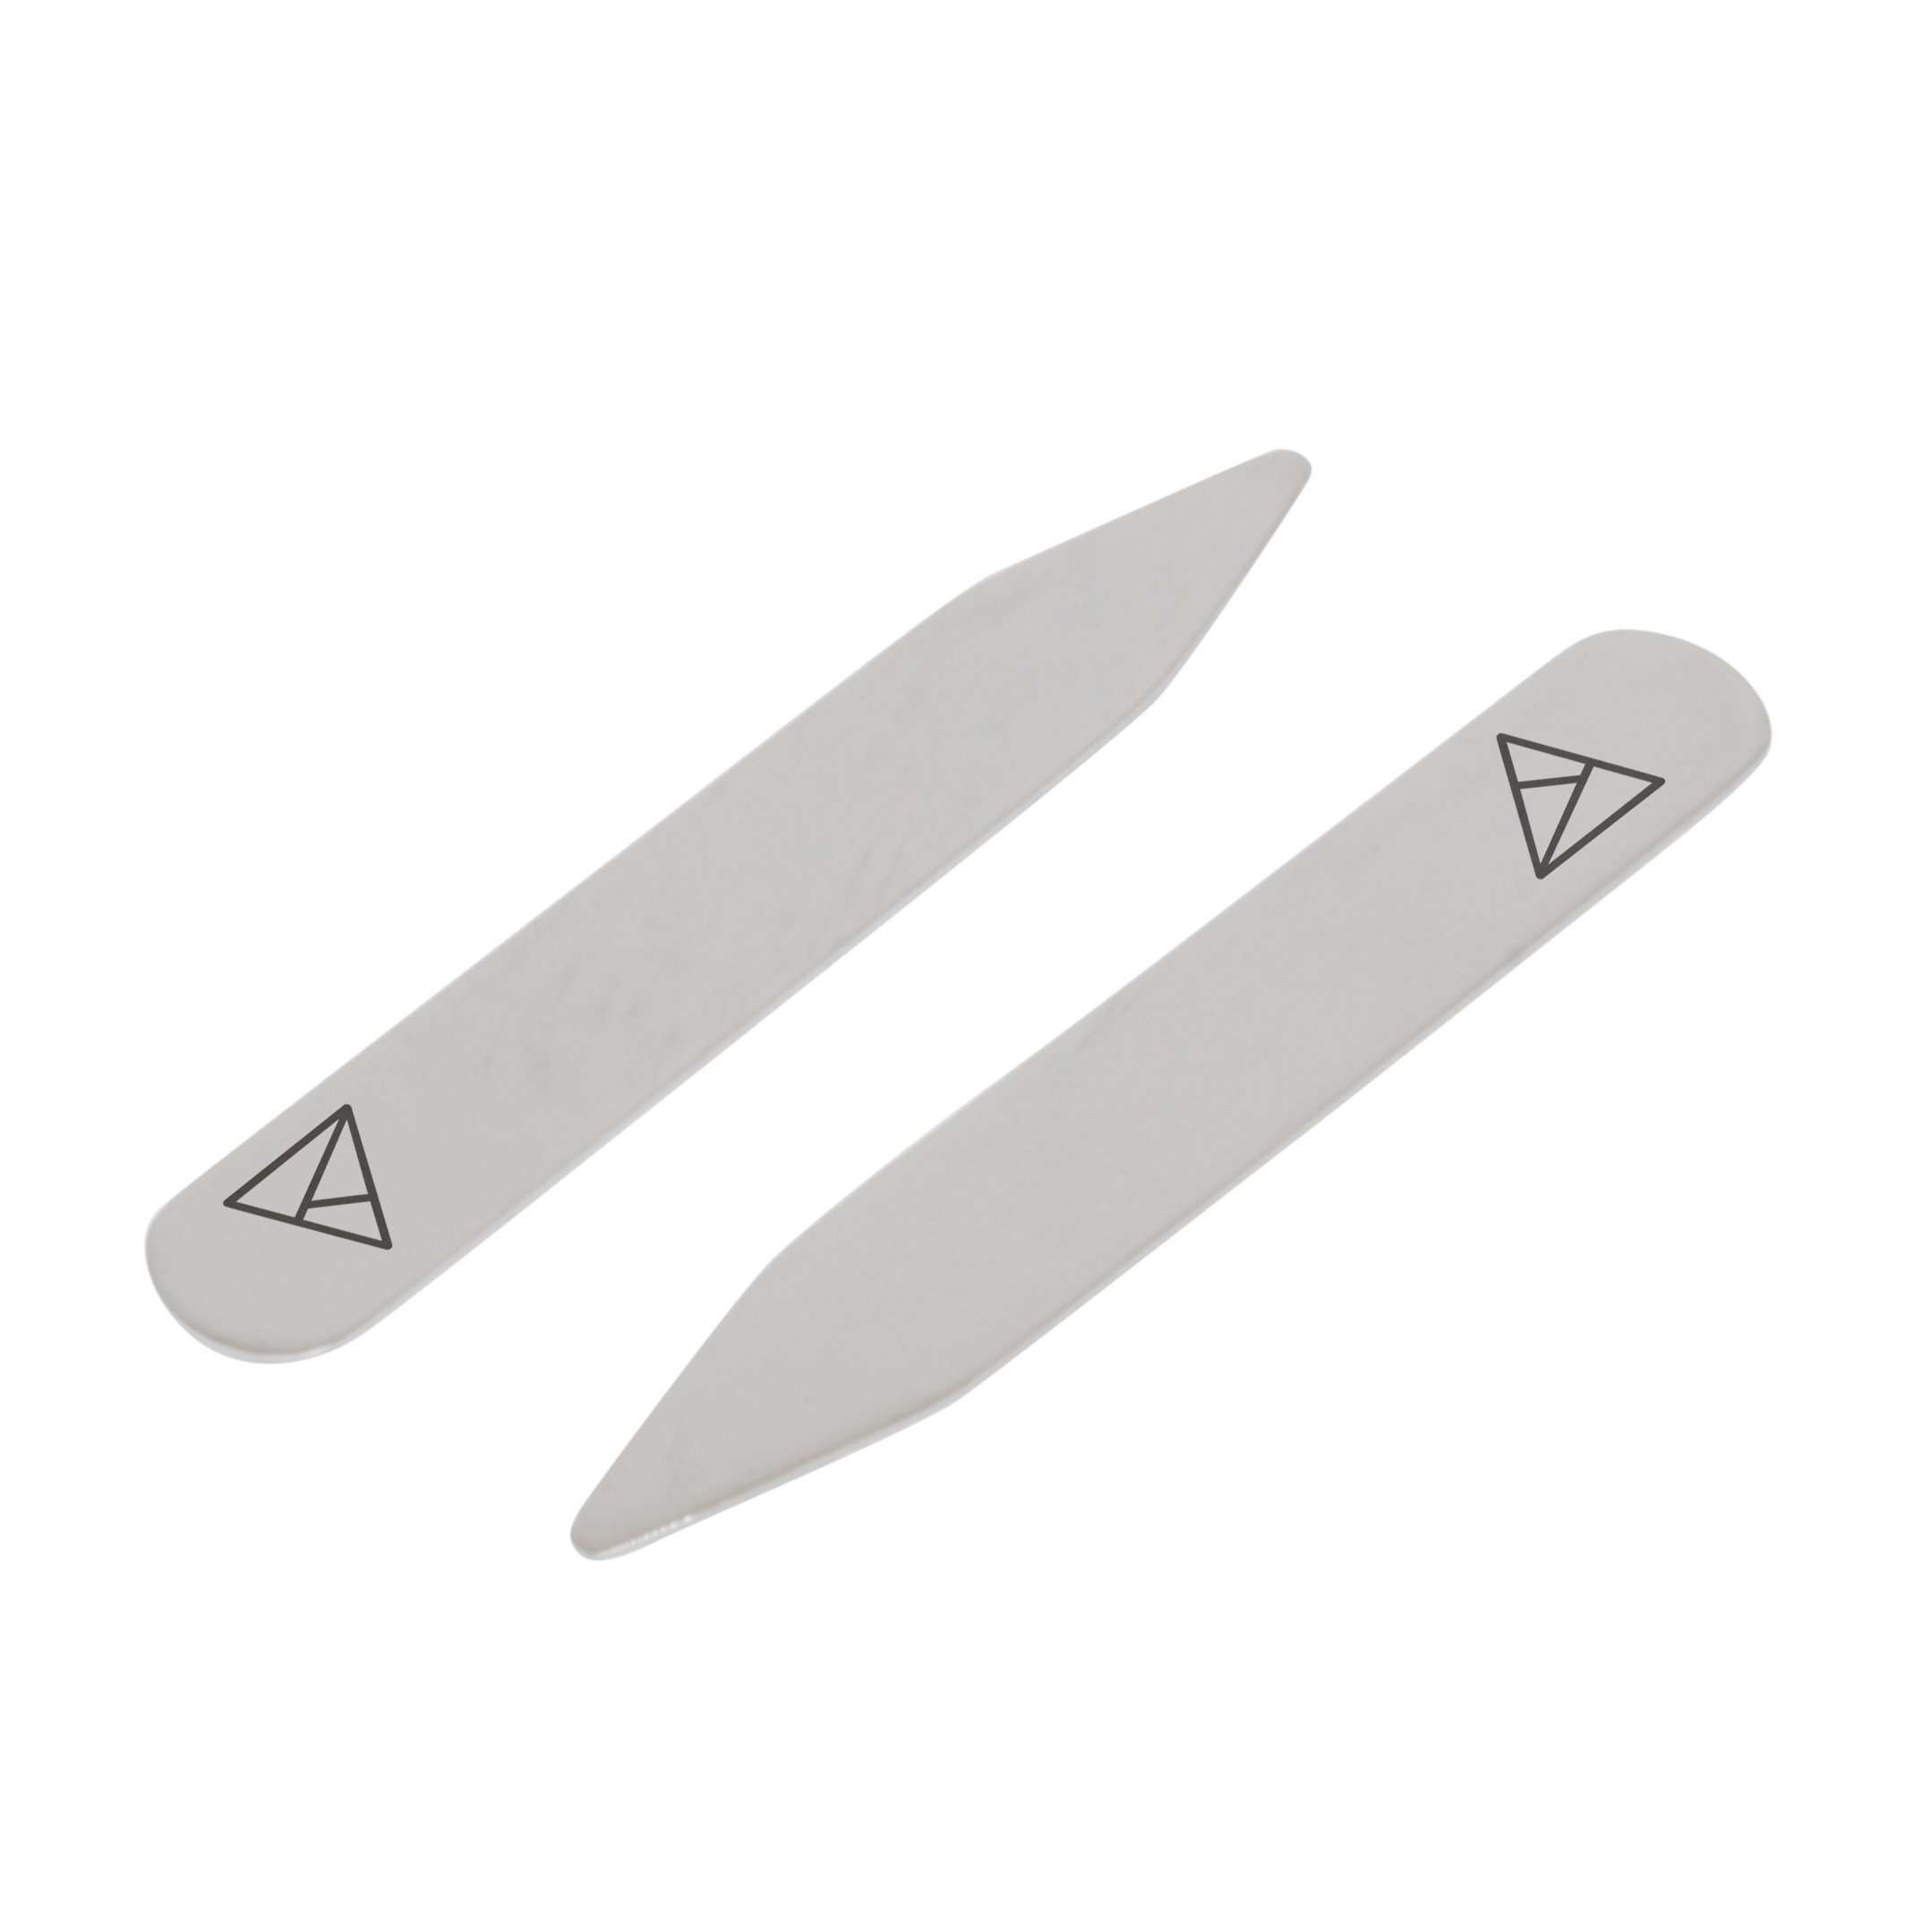 MODERN GOODS SHOP Stainless Steel Collar Stays With Laser Engraved Triangle Design - 2.5 Inch Metal Collar Stiffeners - Made In USA